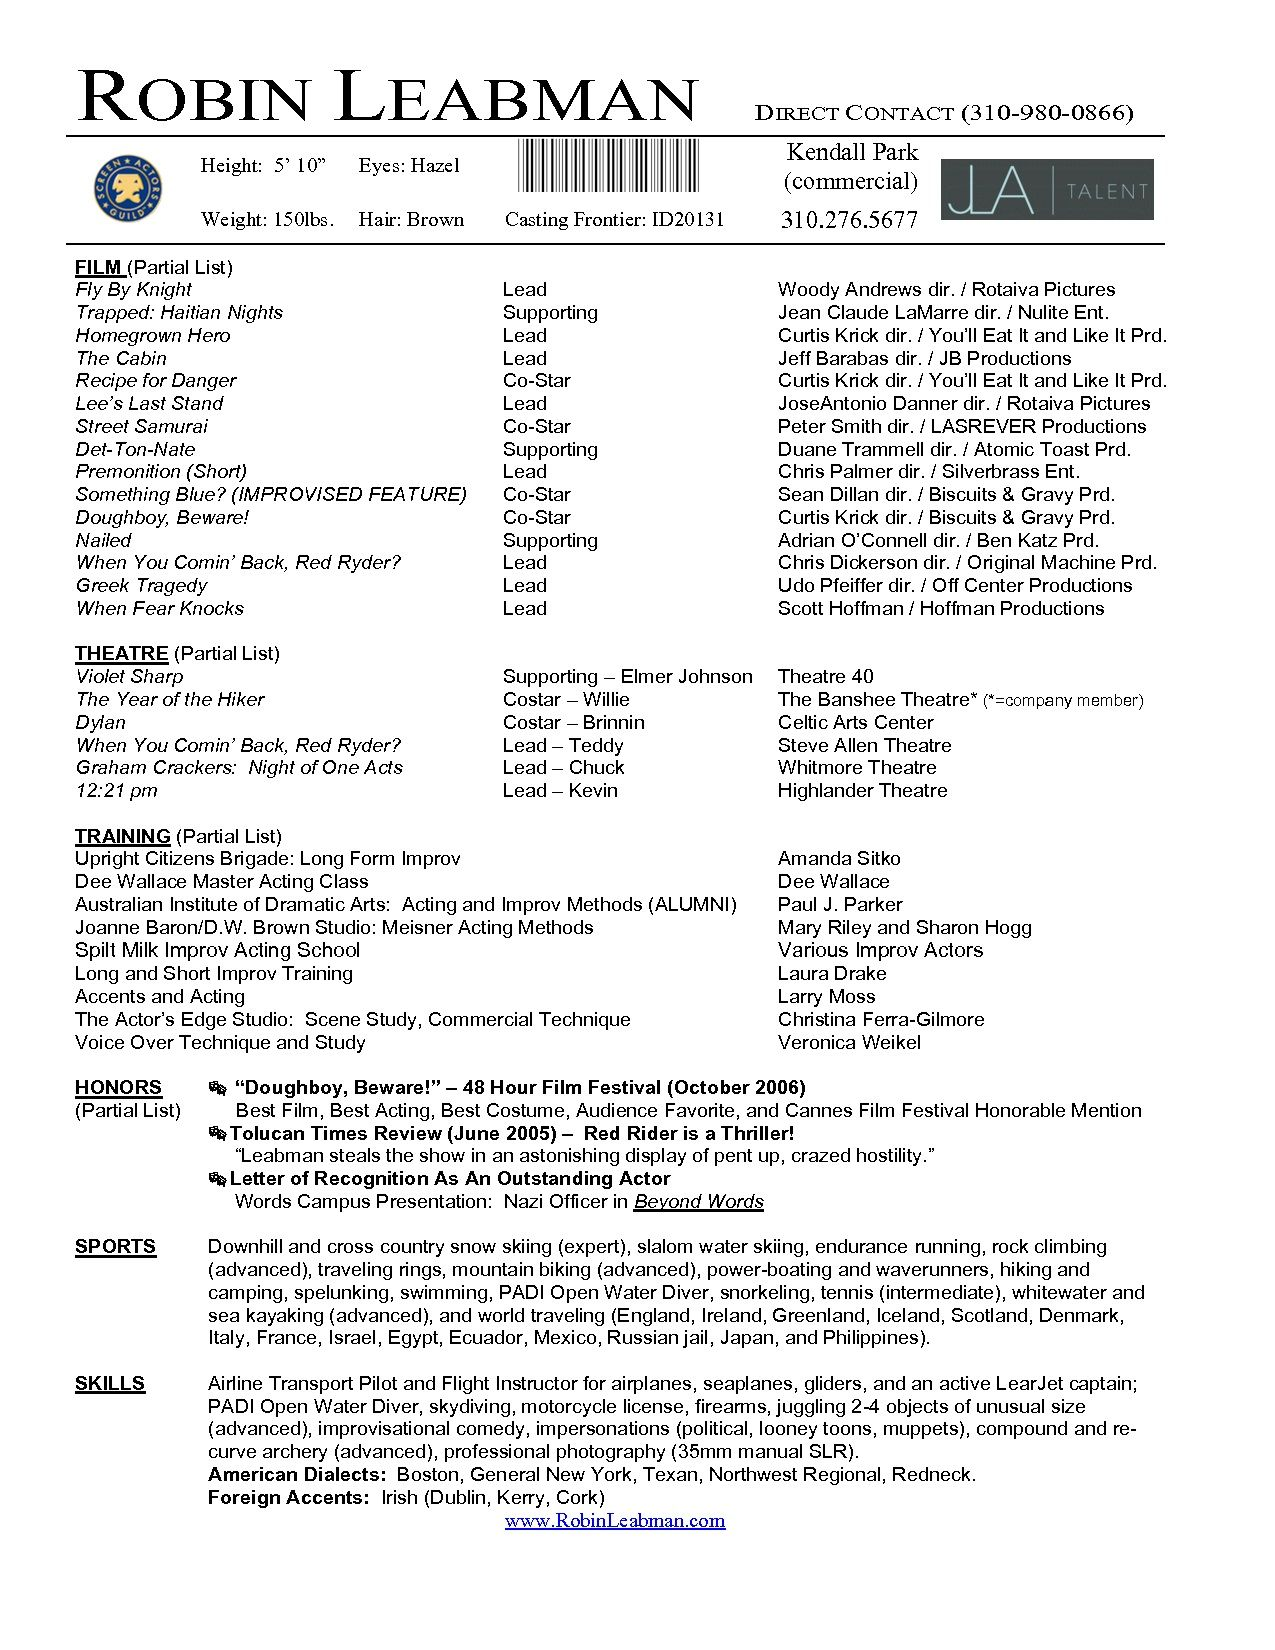 Actor Resume Template Microsoft Word - http://www.resumecareer.info ...